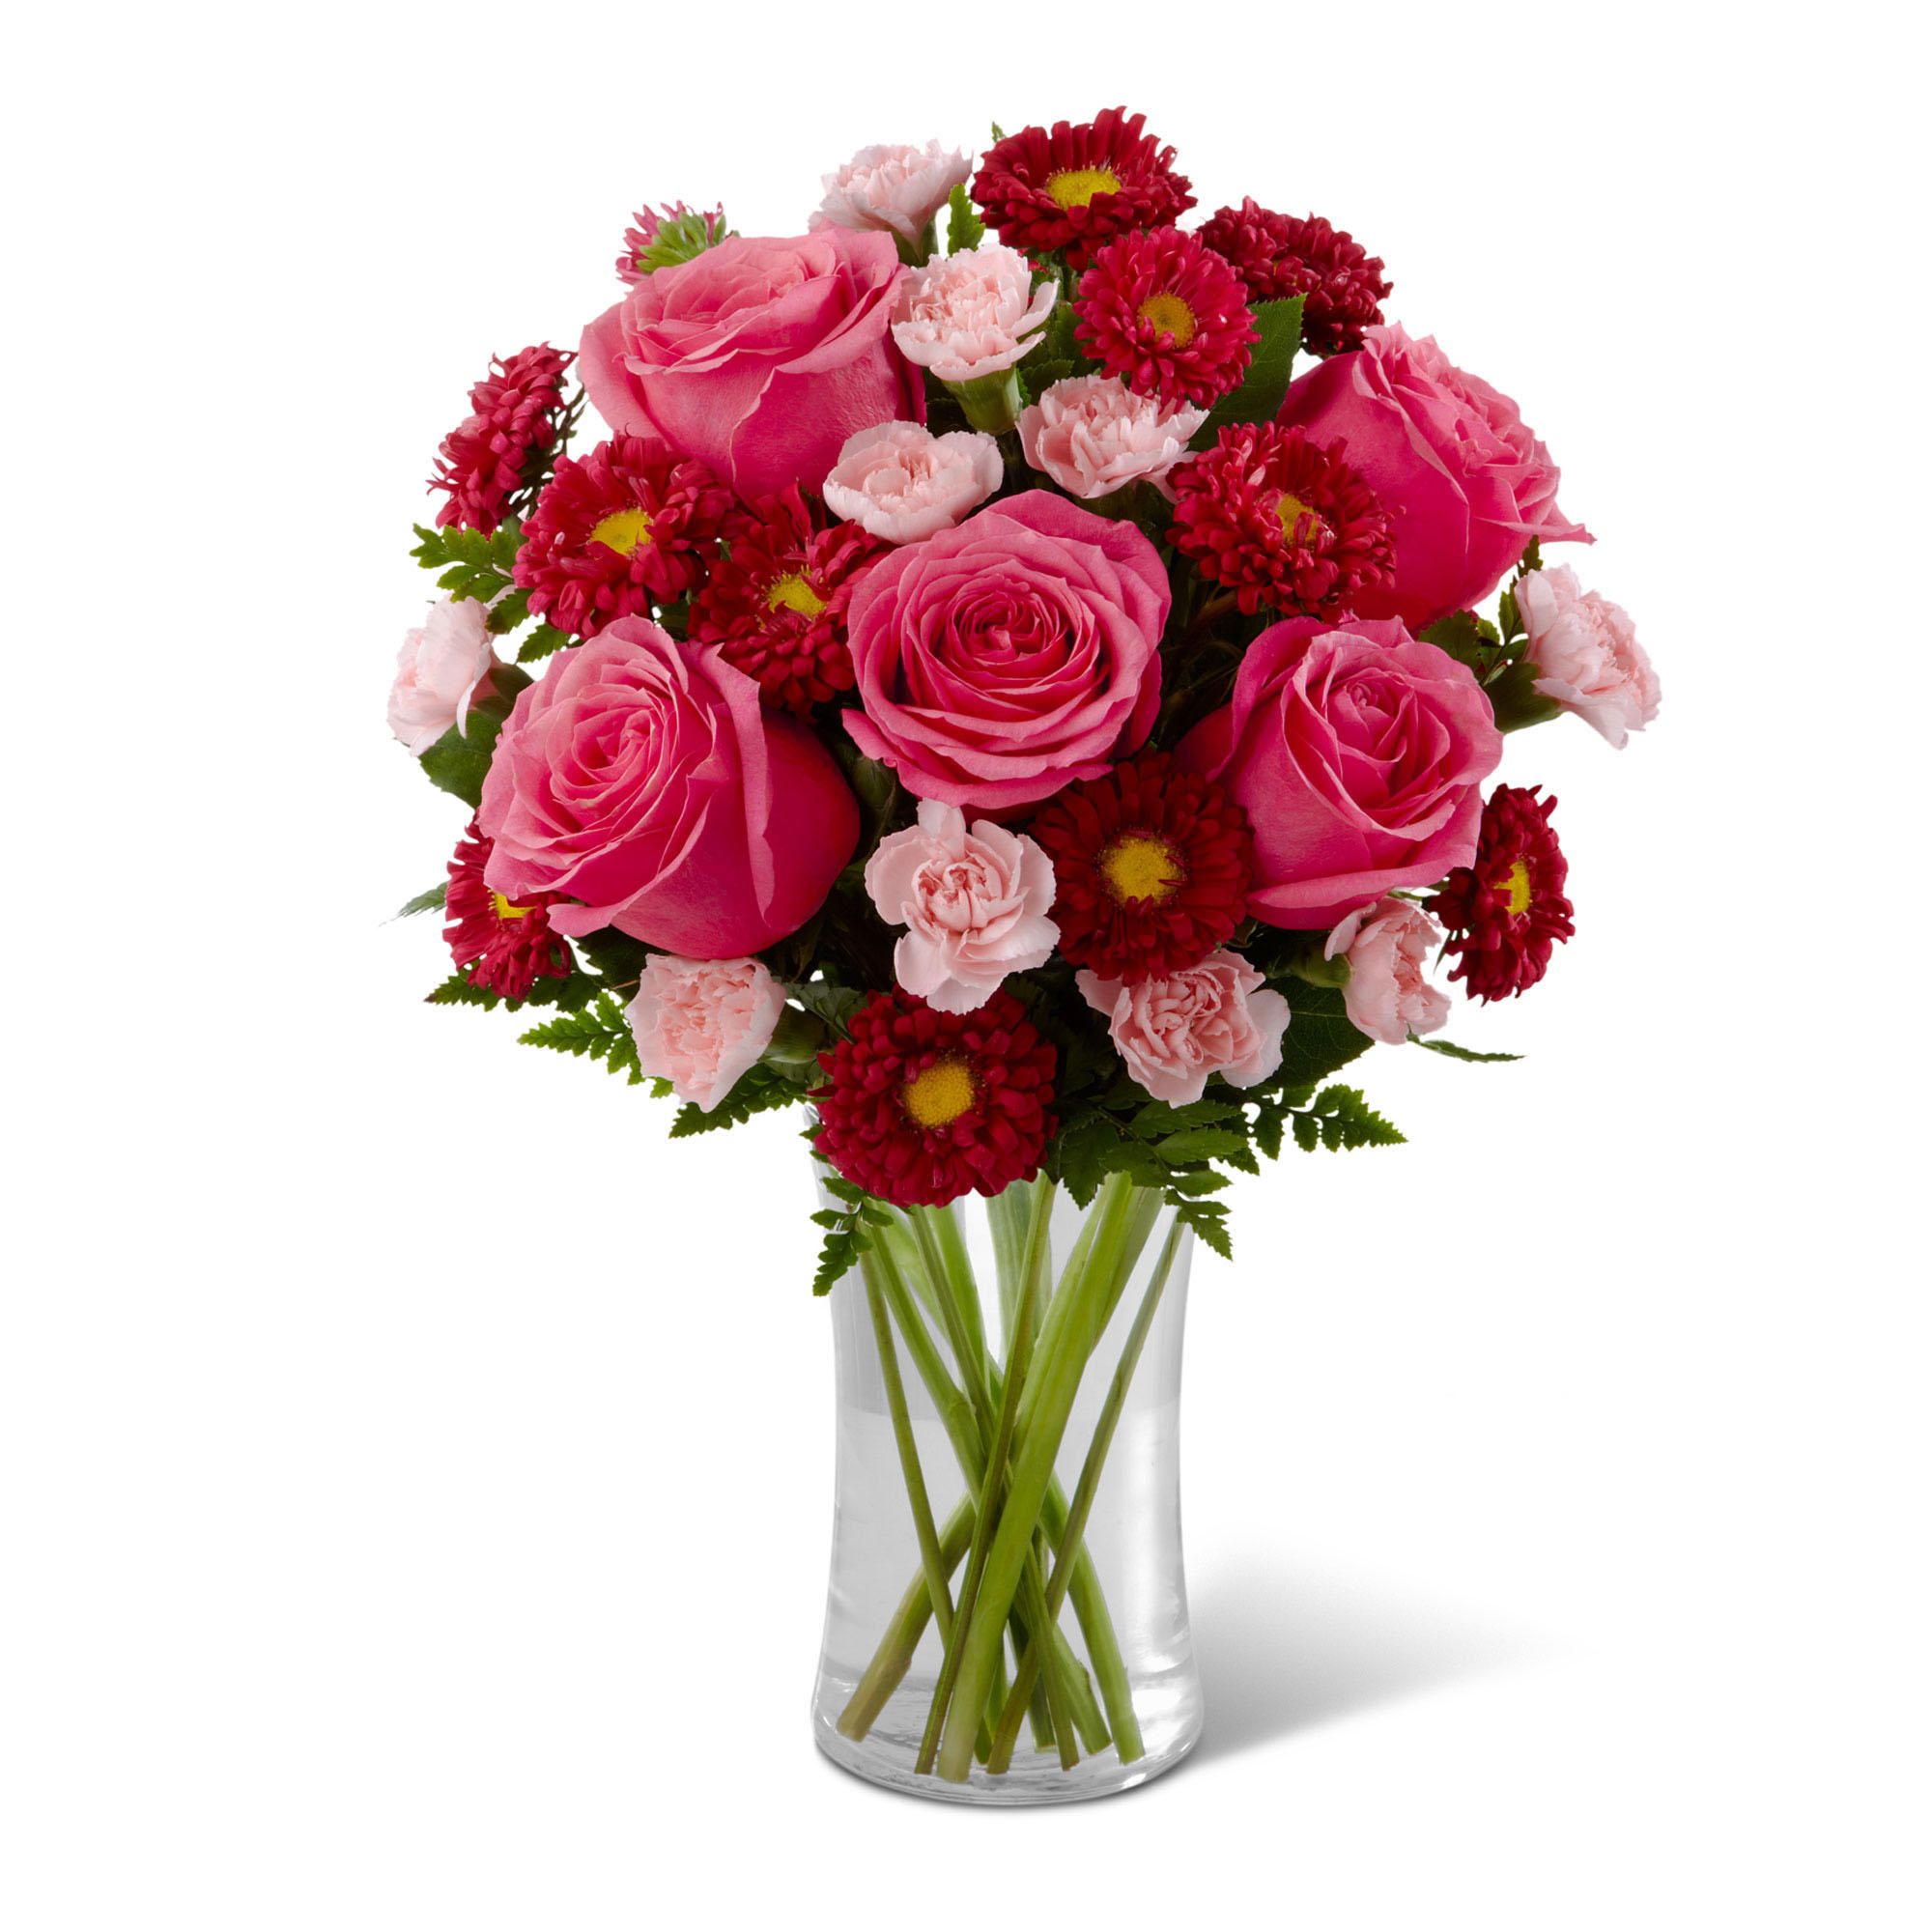 Rich-Mar Florist image 1